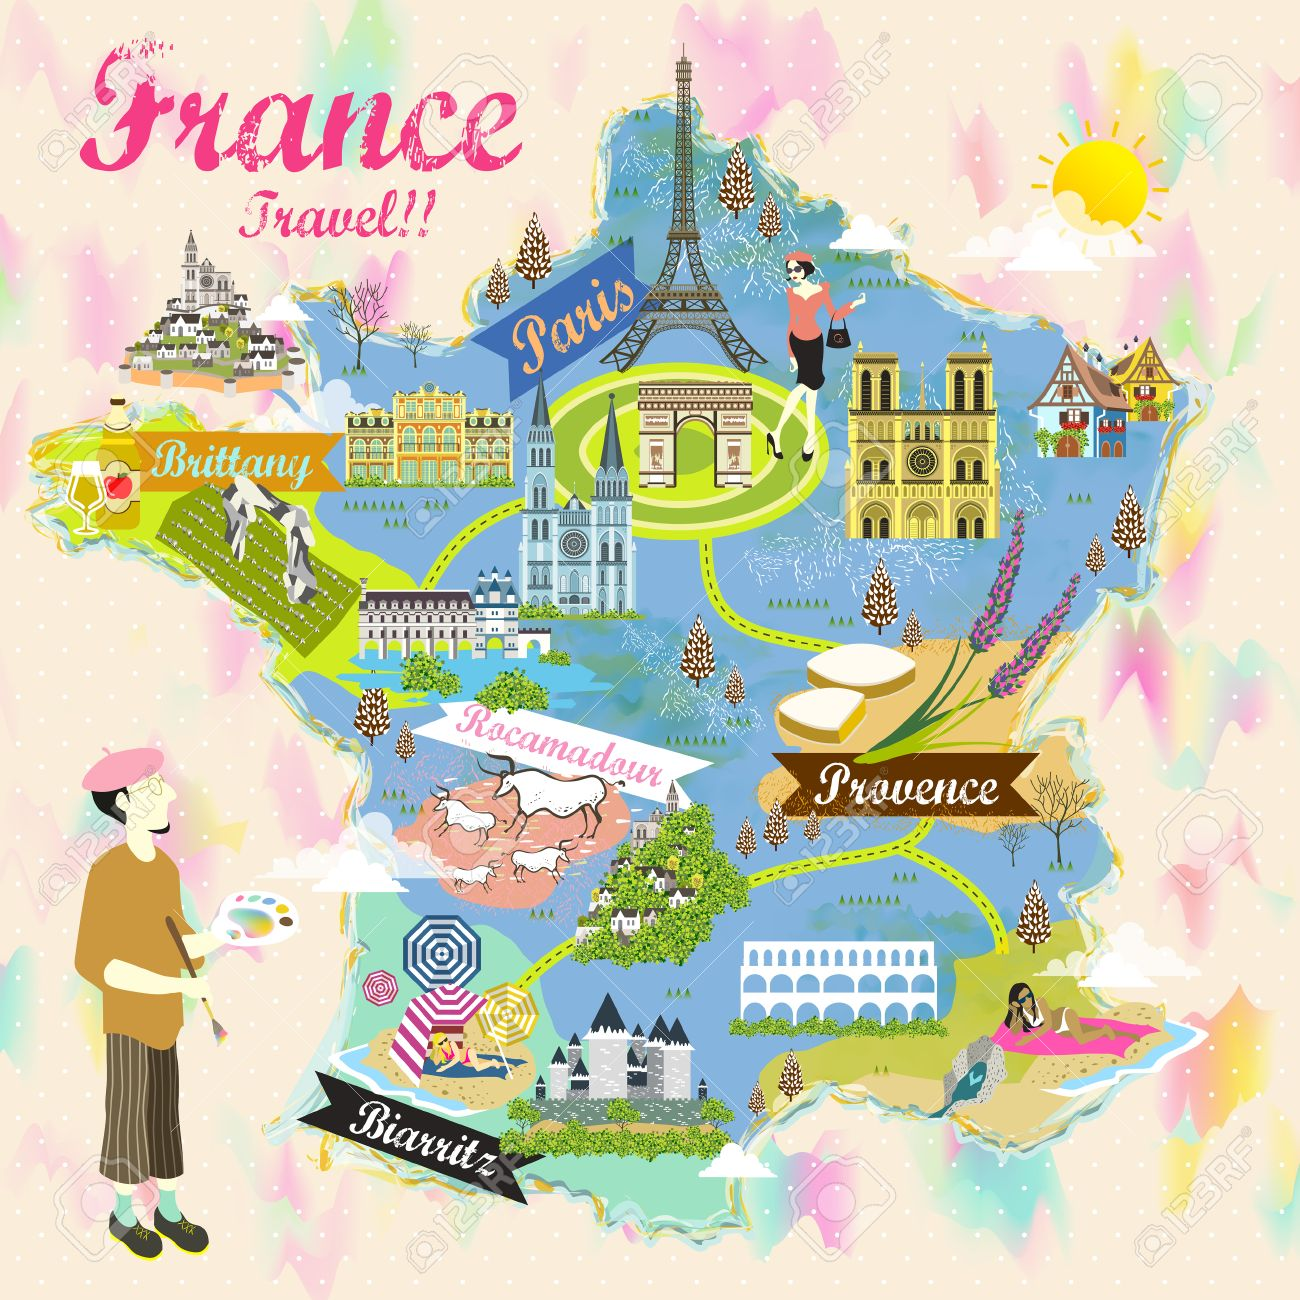 Travel Map Of France.Romantic France Travel Map With Attraction Symbols Royalty Free